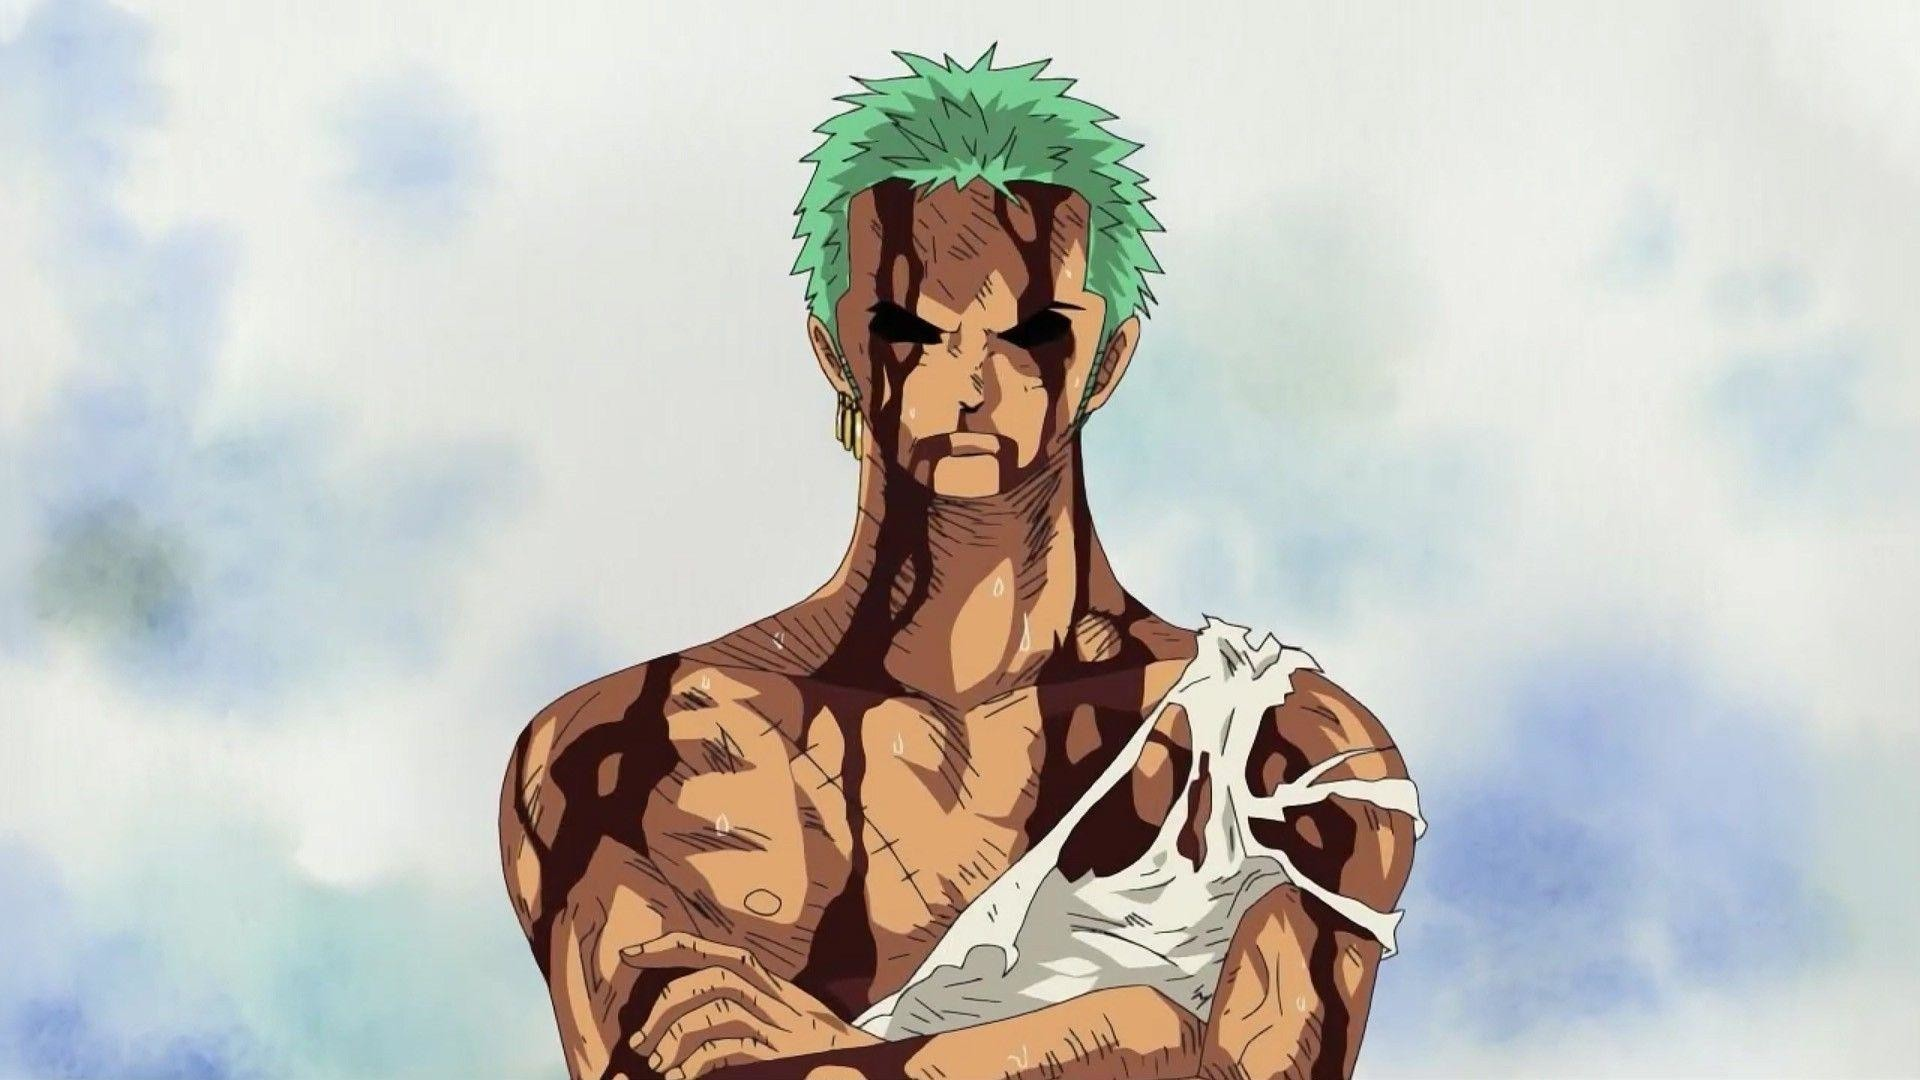 1920x1080 2018 Zoro One Piece Wallpaper